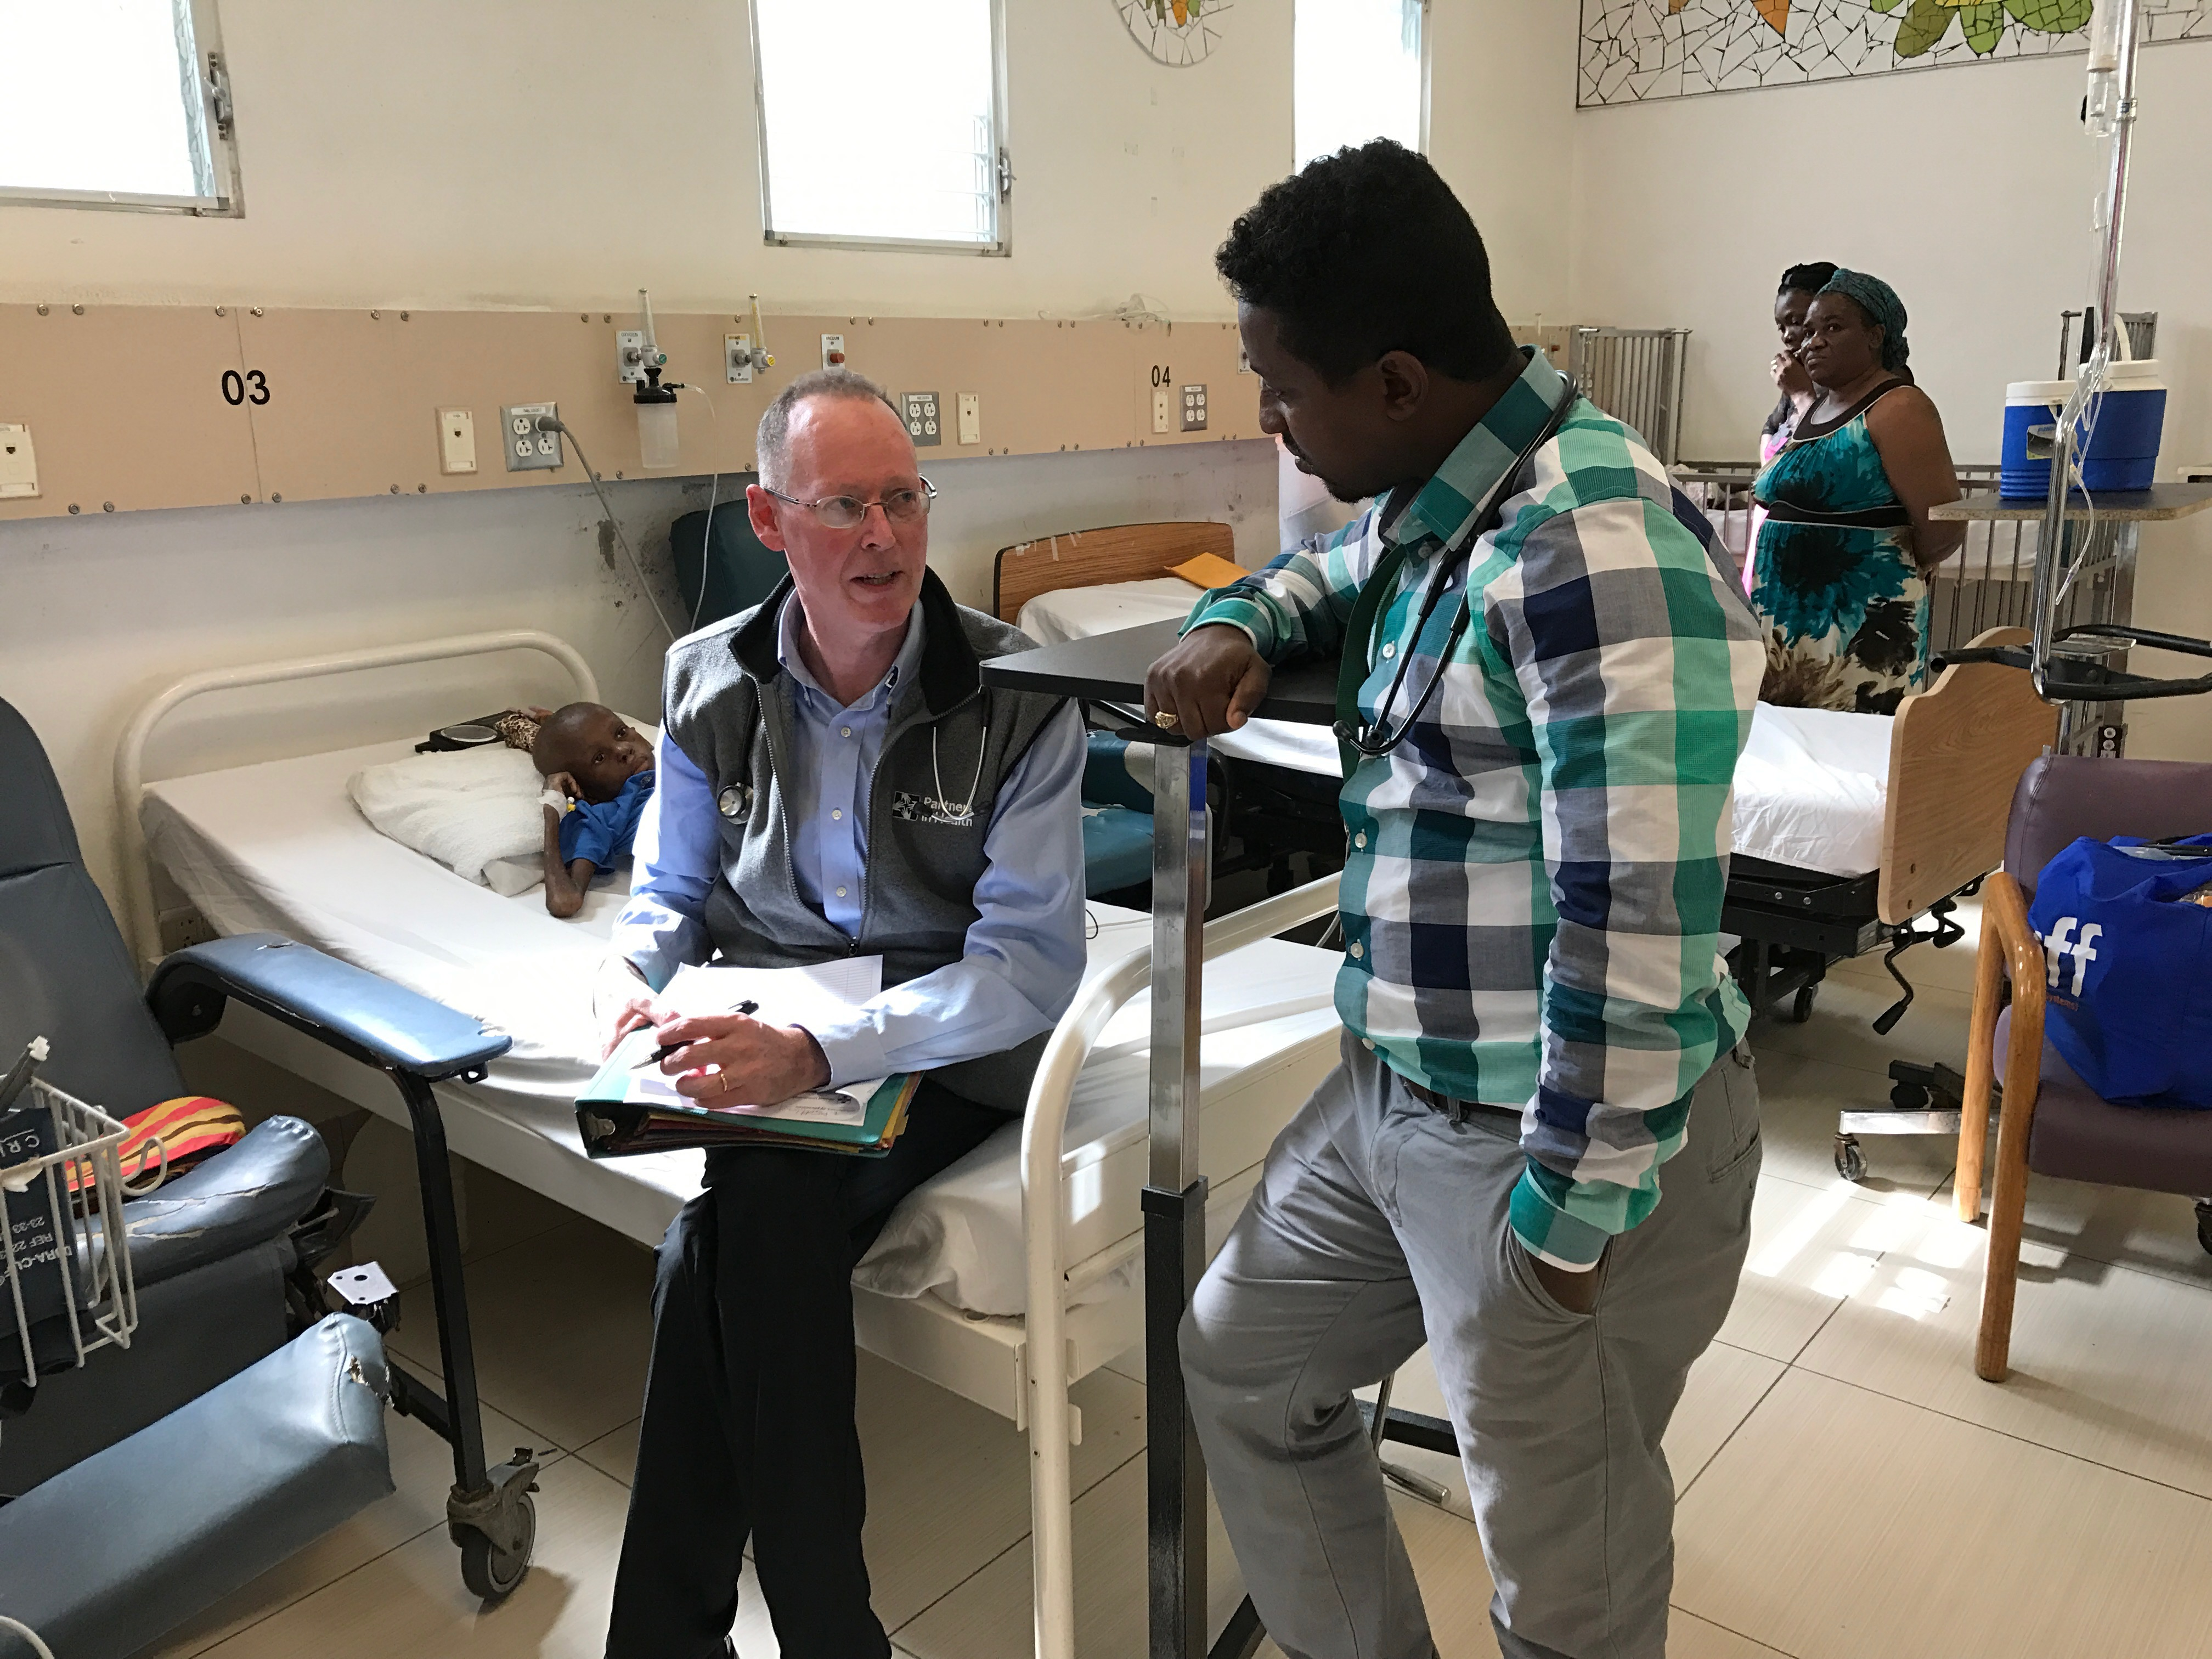 Dr. Paul Farmer at University Hospital in Mirebalais, Haiti